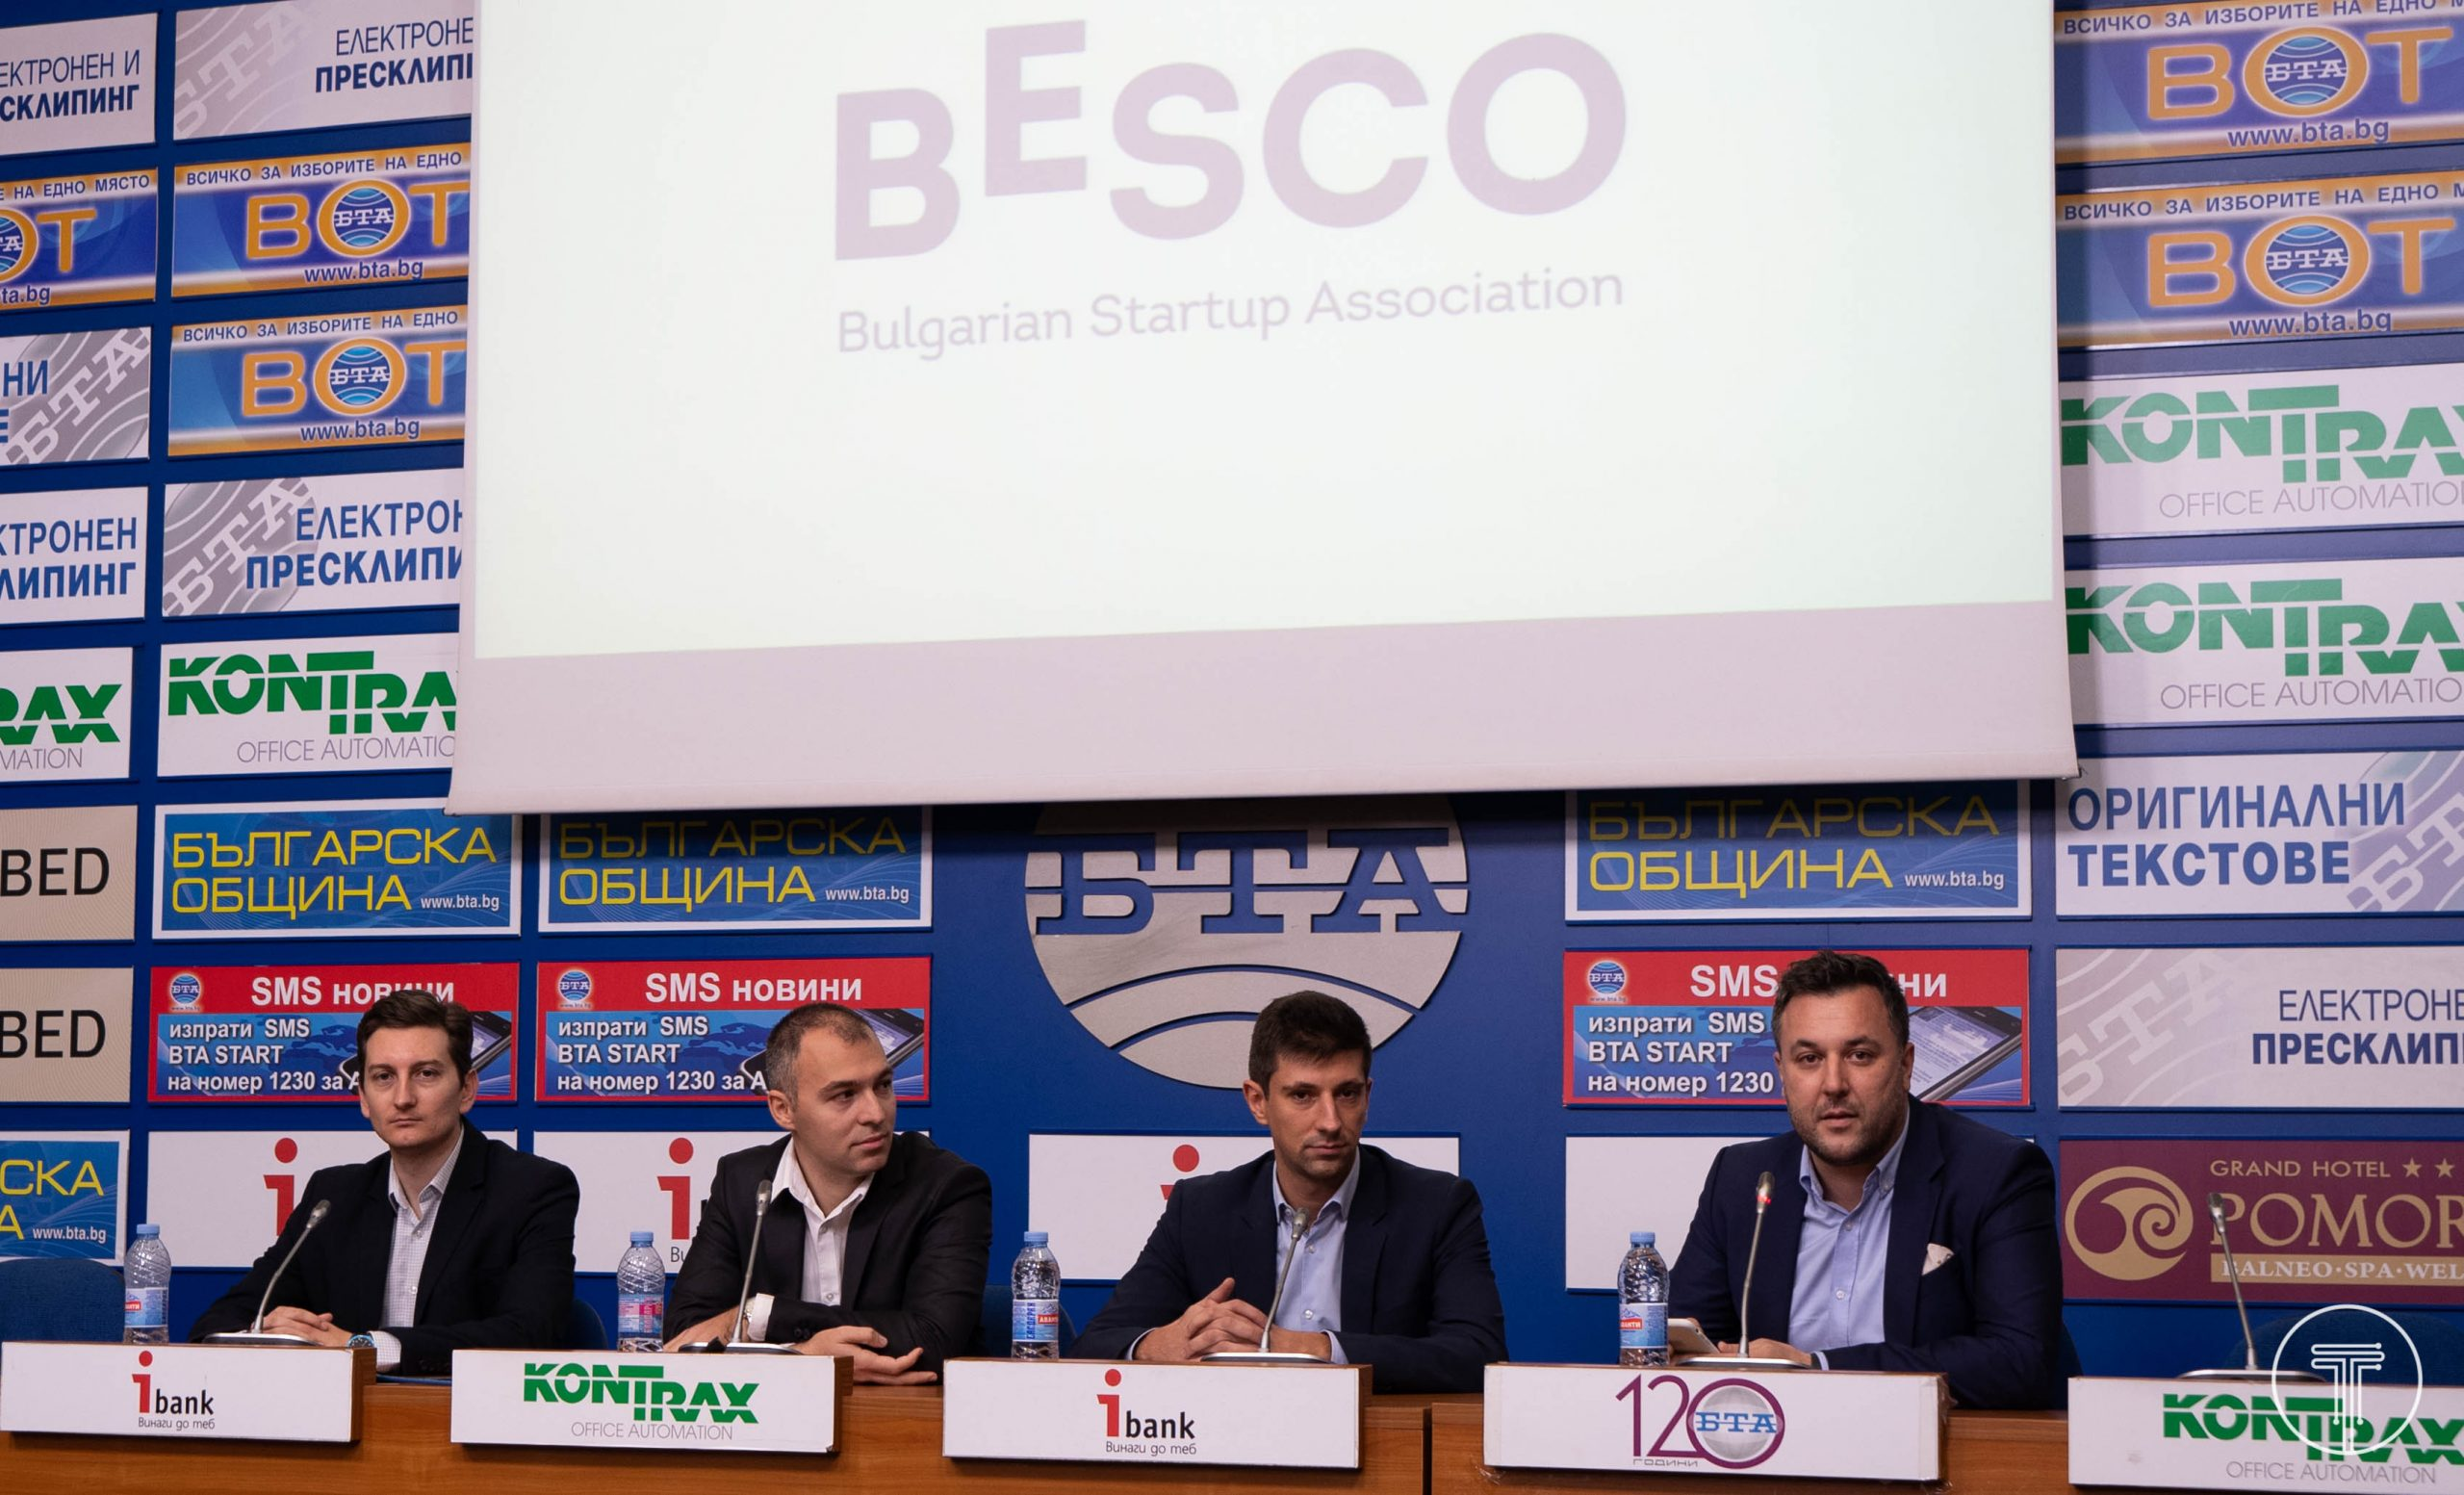 BESCO-conference-4